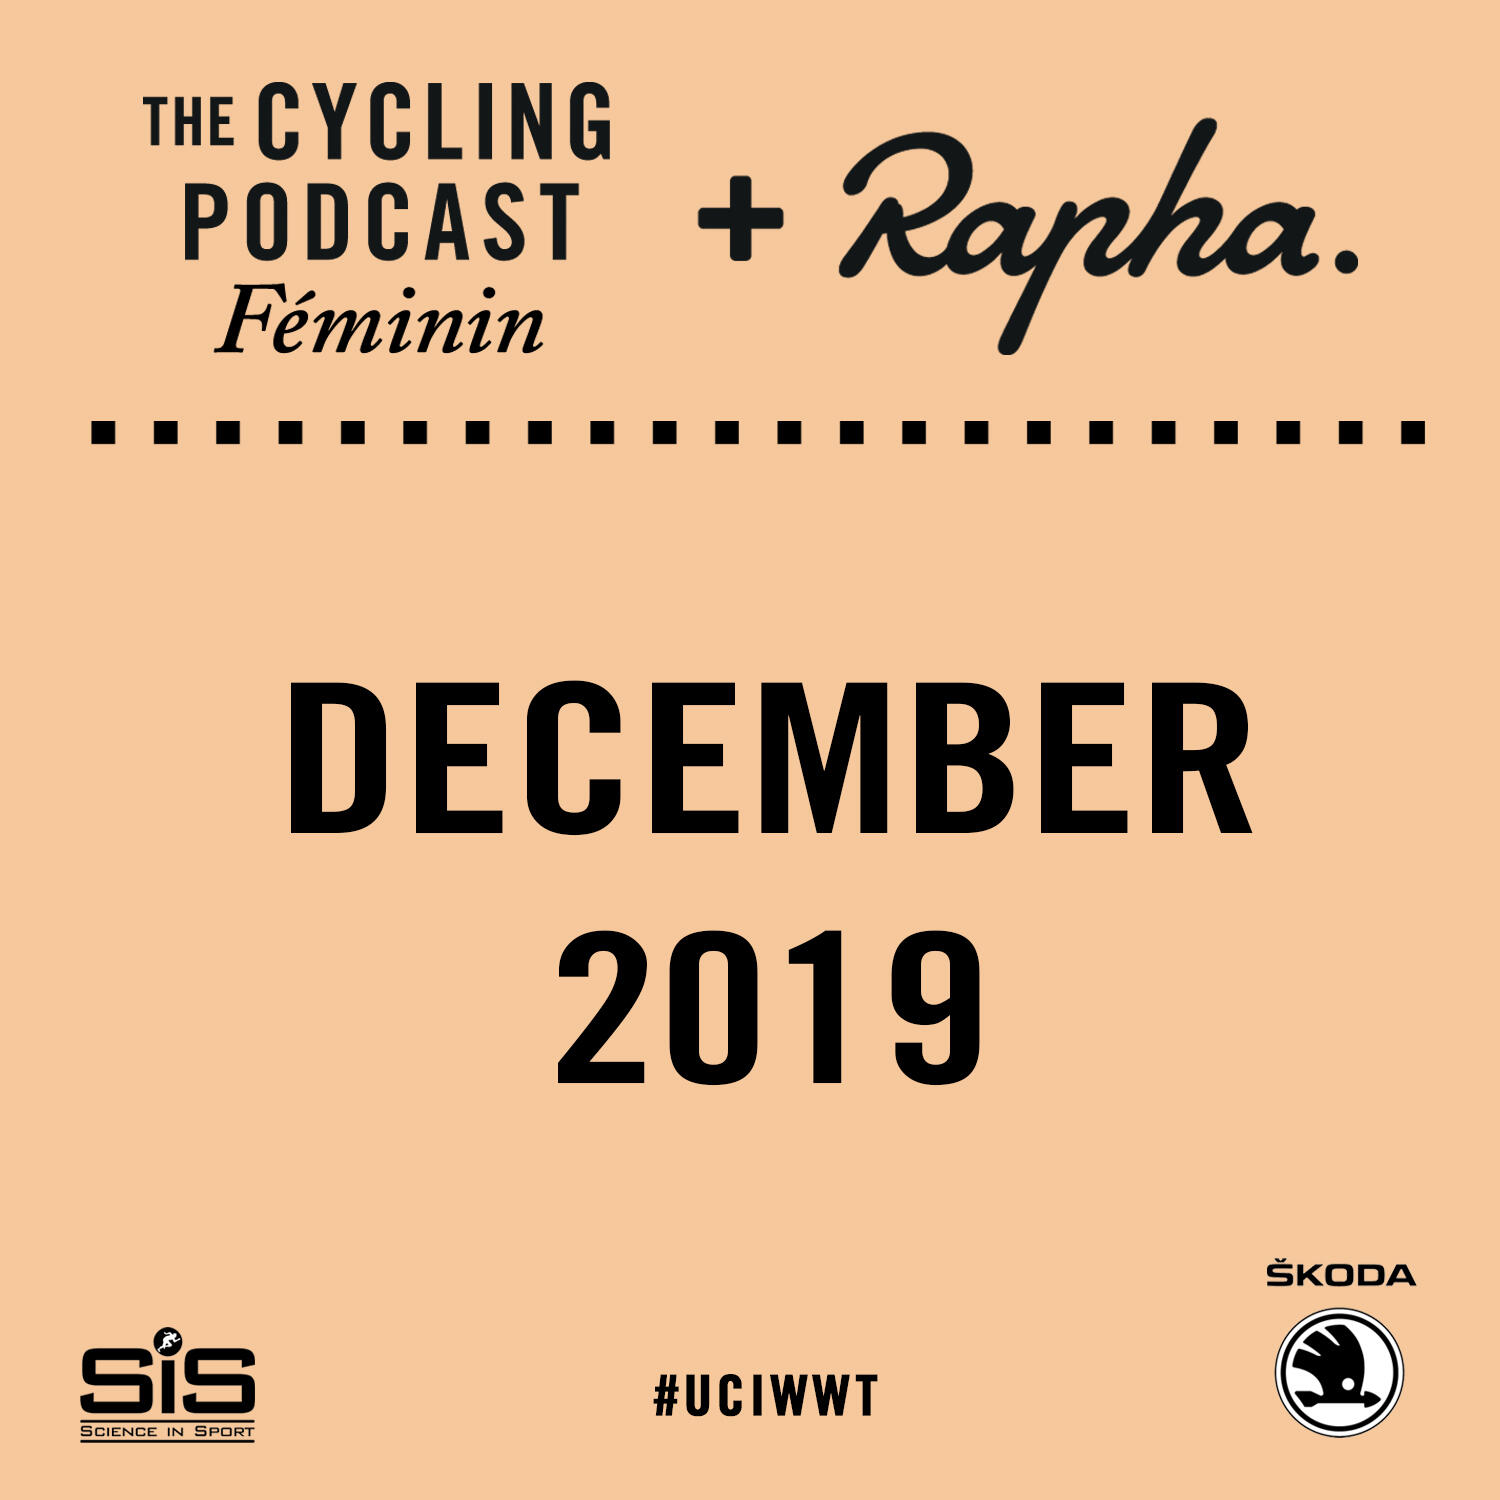 180: The Cycling Podcast Féminin | December 2019